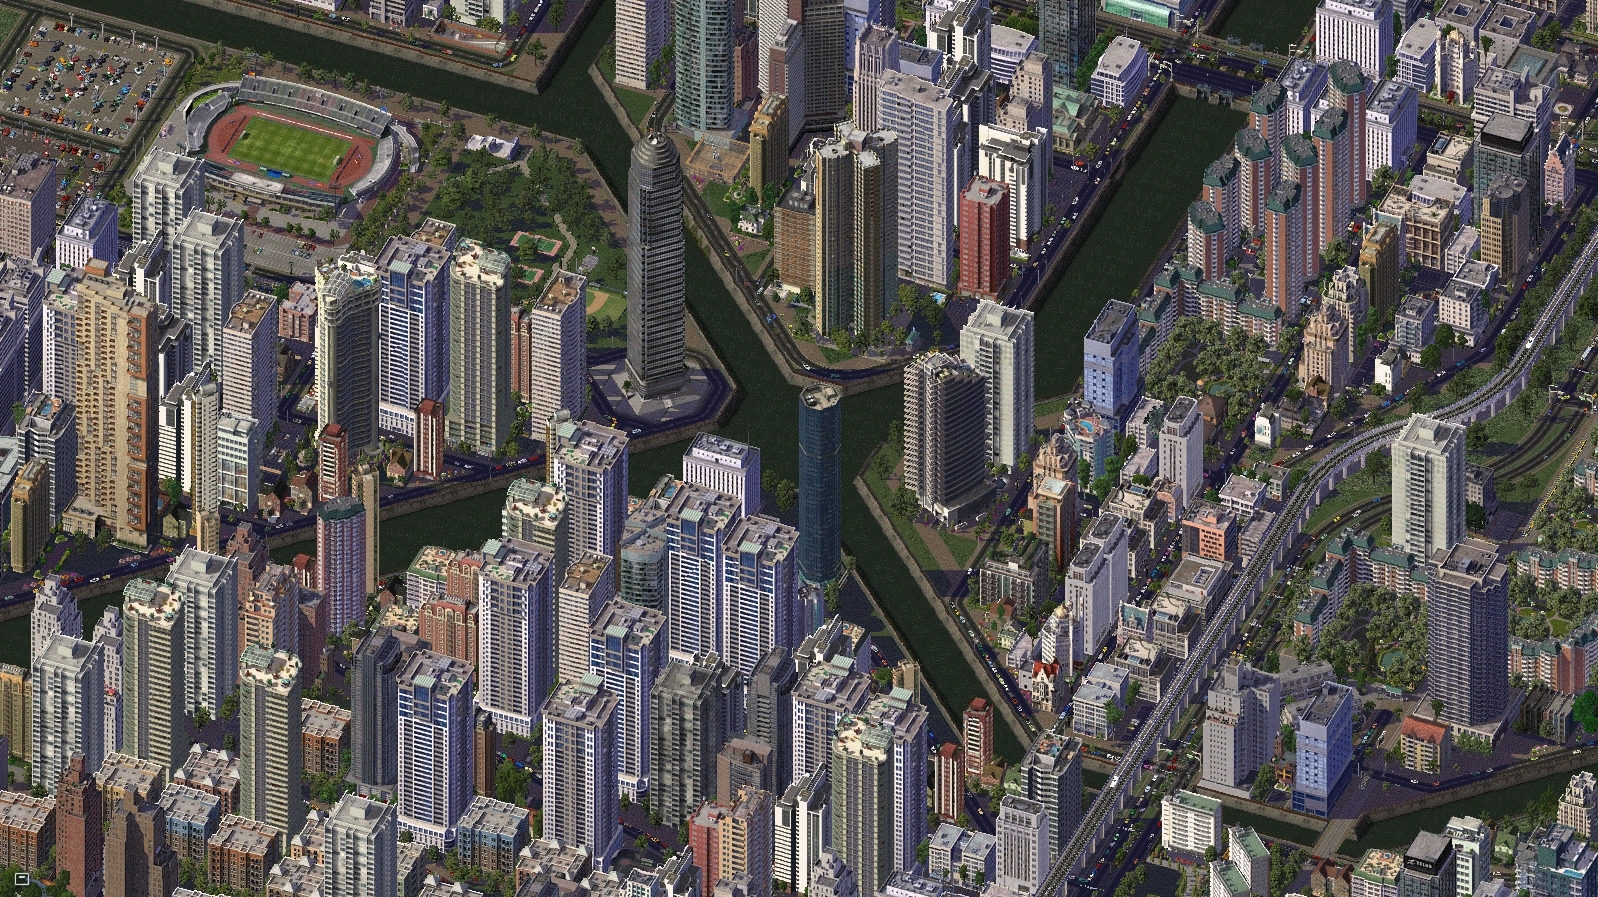 Sim City 4, SimCity4, simcity4, City in Motion GIFs